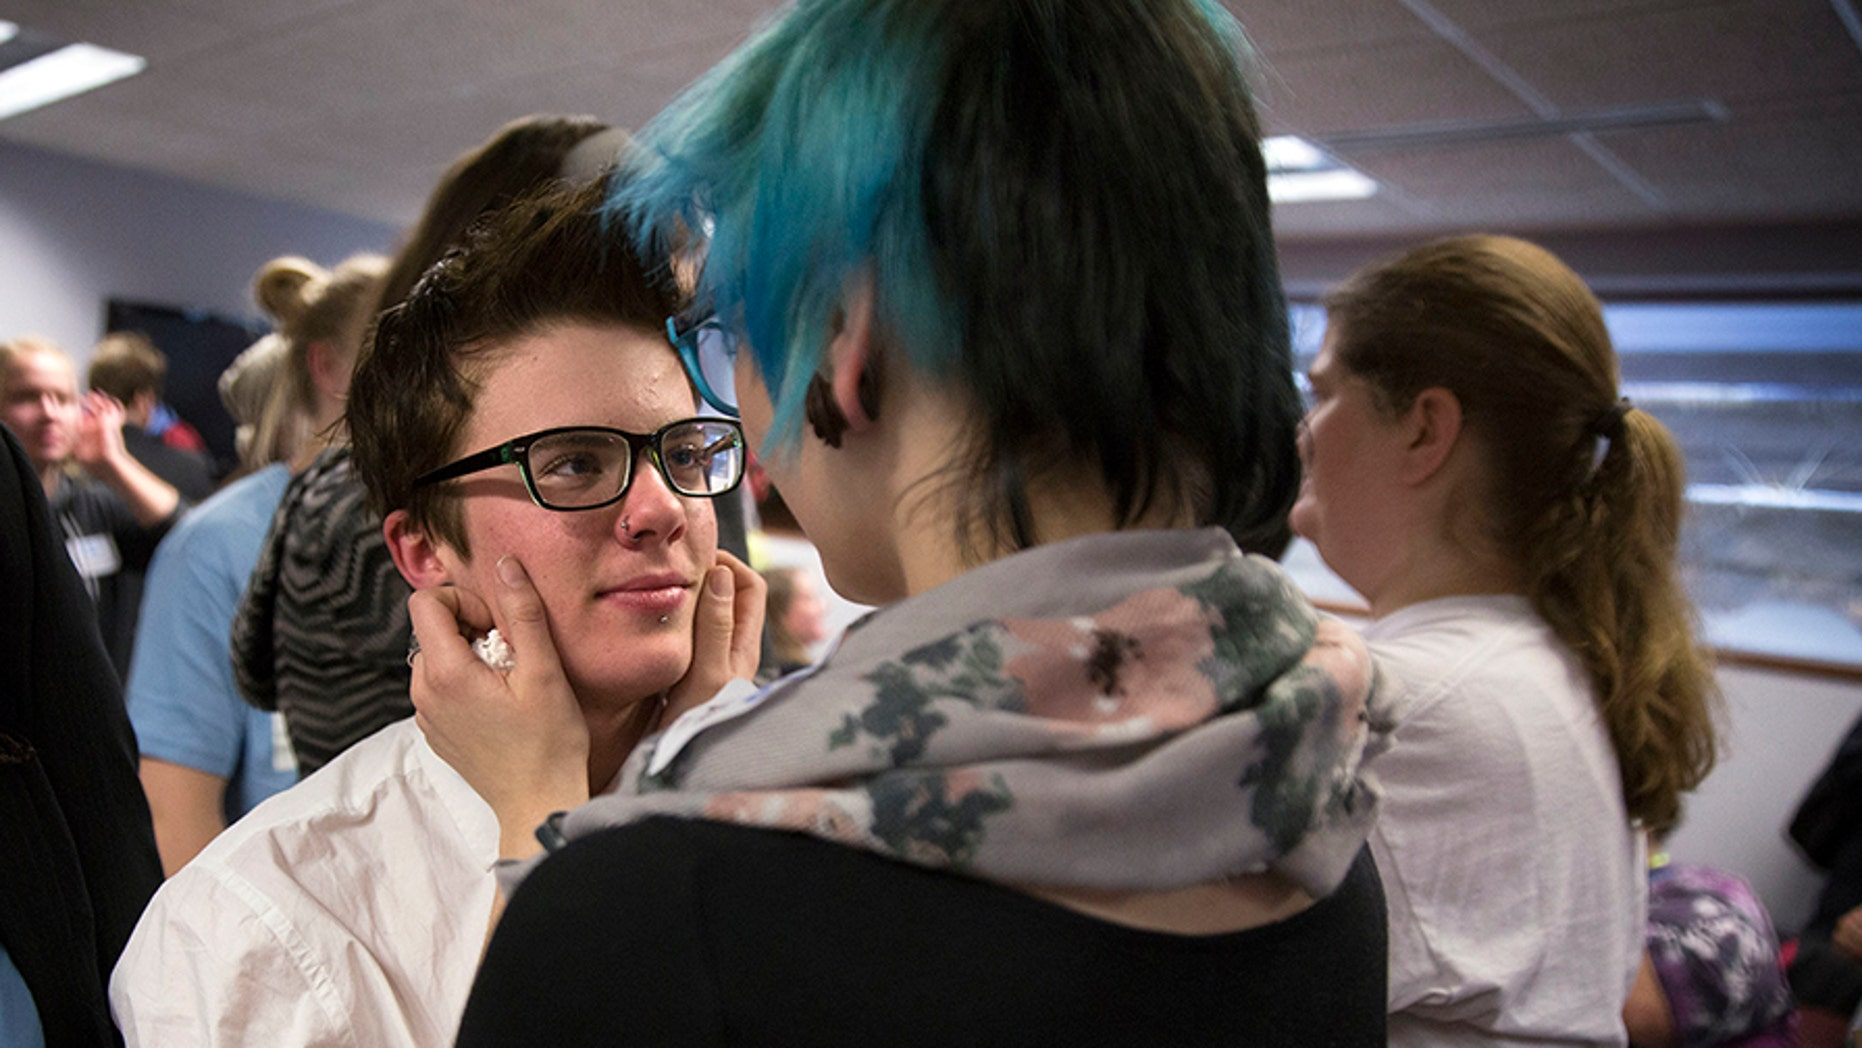 In this Dec. 4, 2014 file photo, Elliott Kunerth, 17, a transgender male high school student hugs his girlfriend, Kelsi Pettit, 17, after the Minnesota State High School League board voted to pass the Model Gender Identity Participation in MSHSL Activities Policy in Brooklyn Park, Minn. (Leila Navidi/Star Tribune via AP)